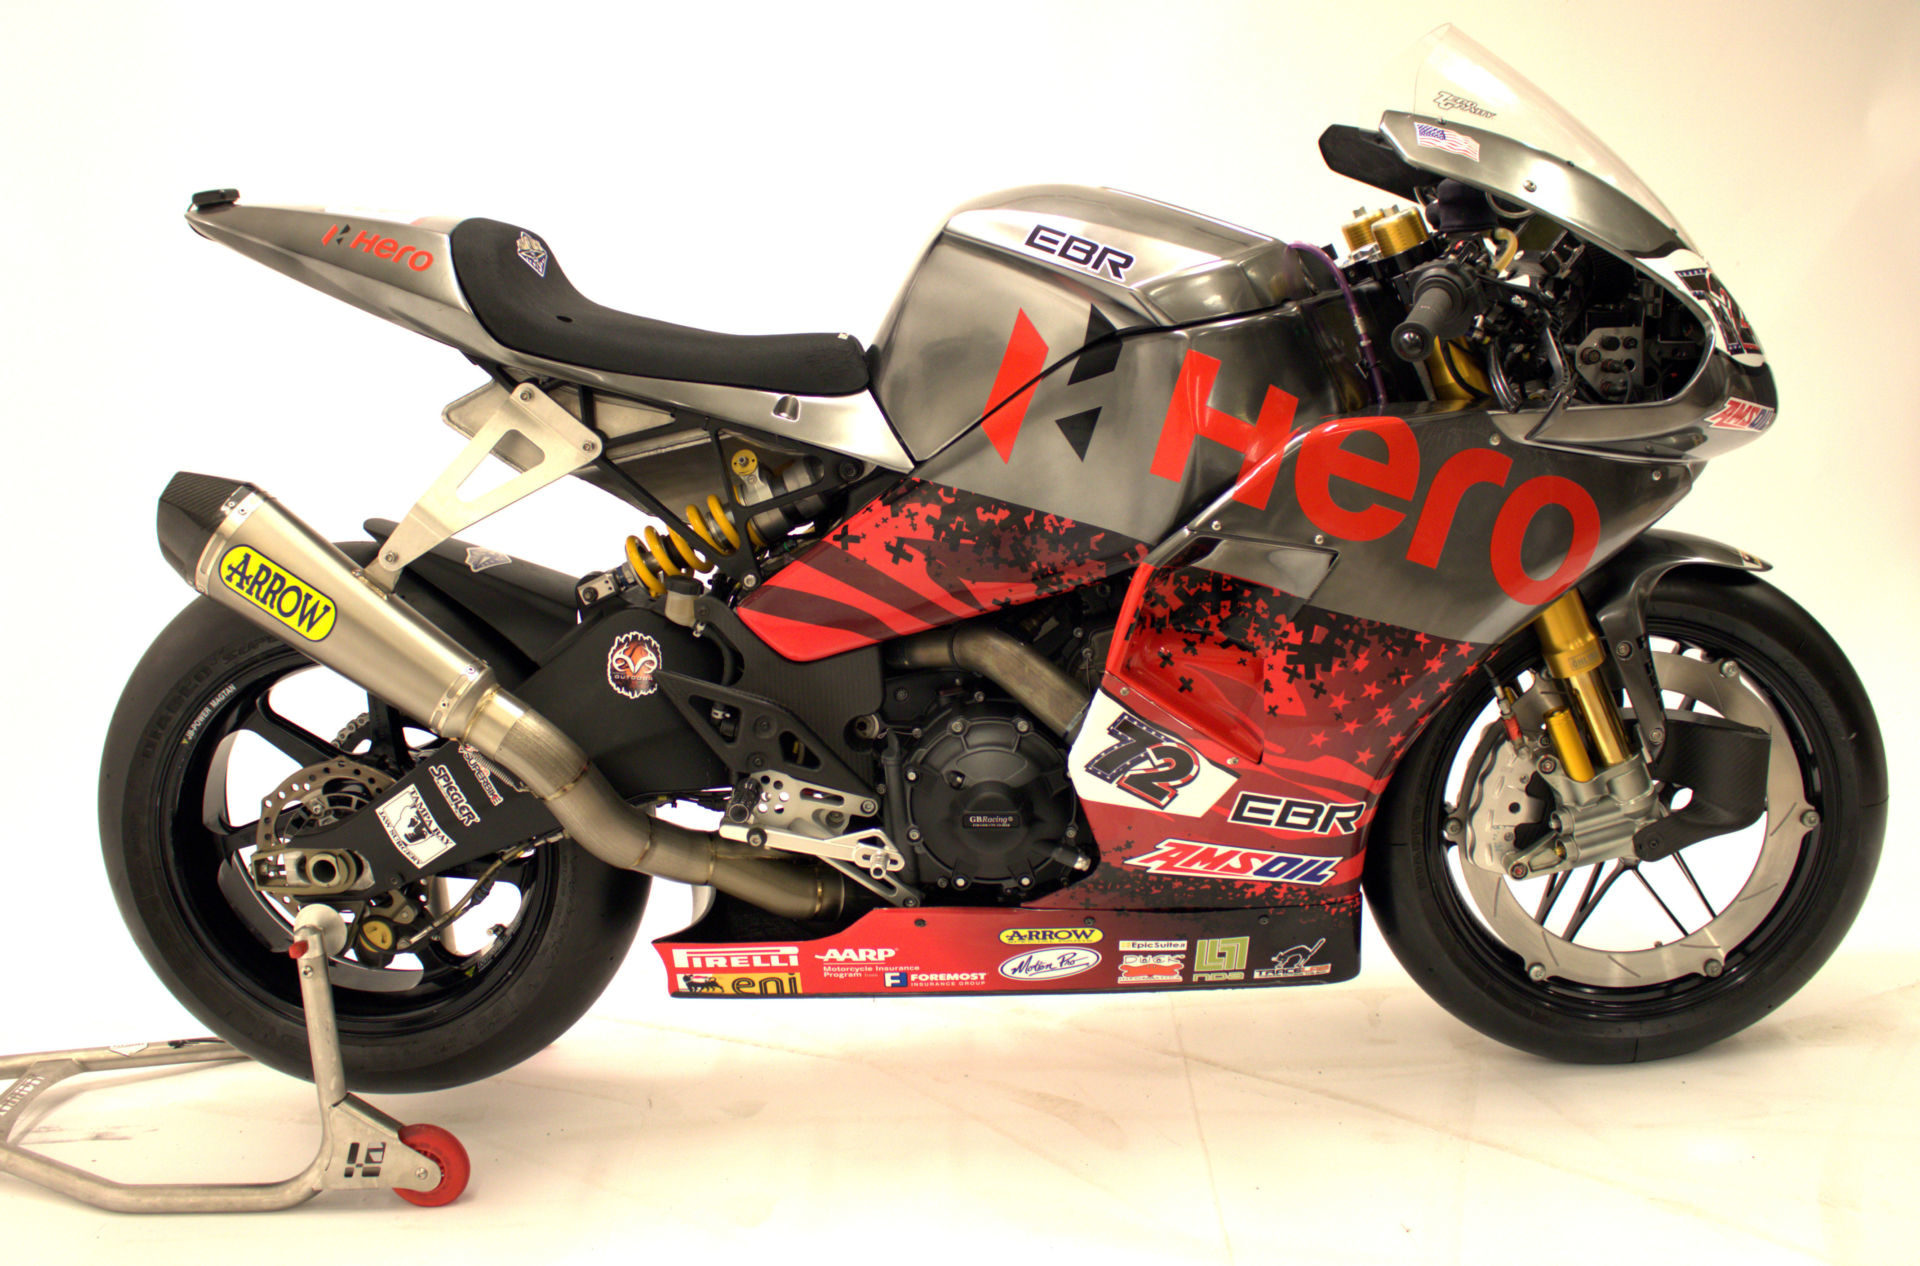 An ex-Larry Pegram Hero EBR 1190 World Superbike. Photo courtesy of NCCR.